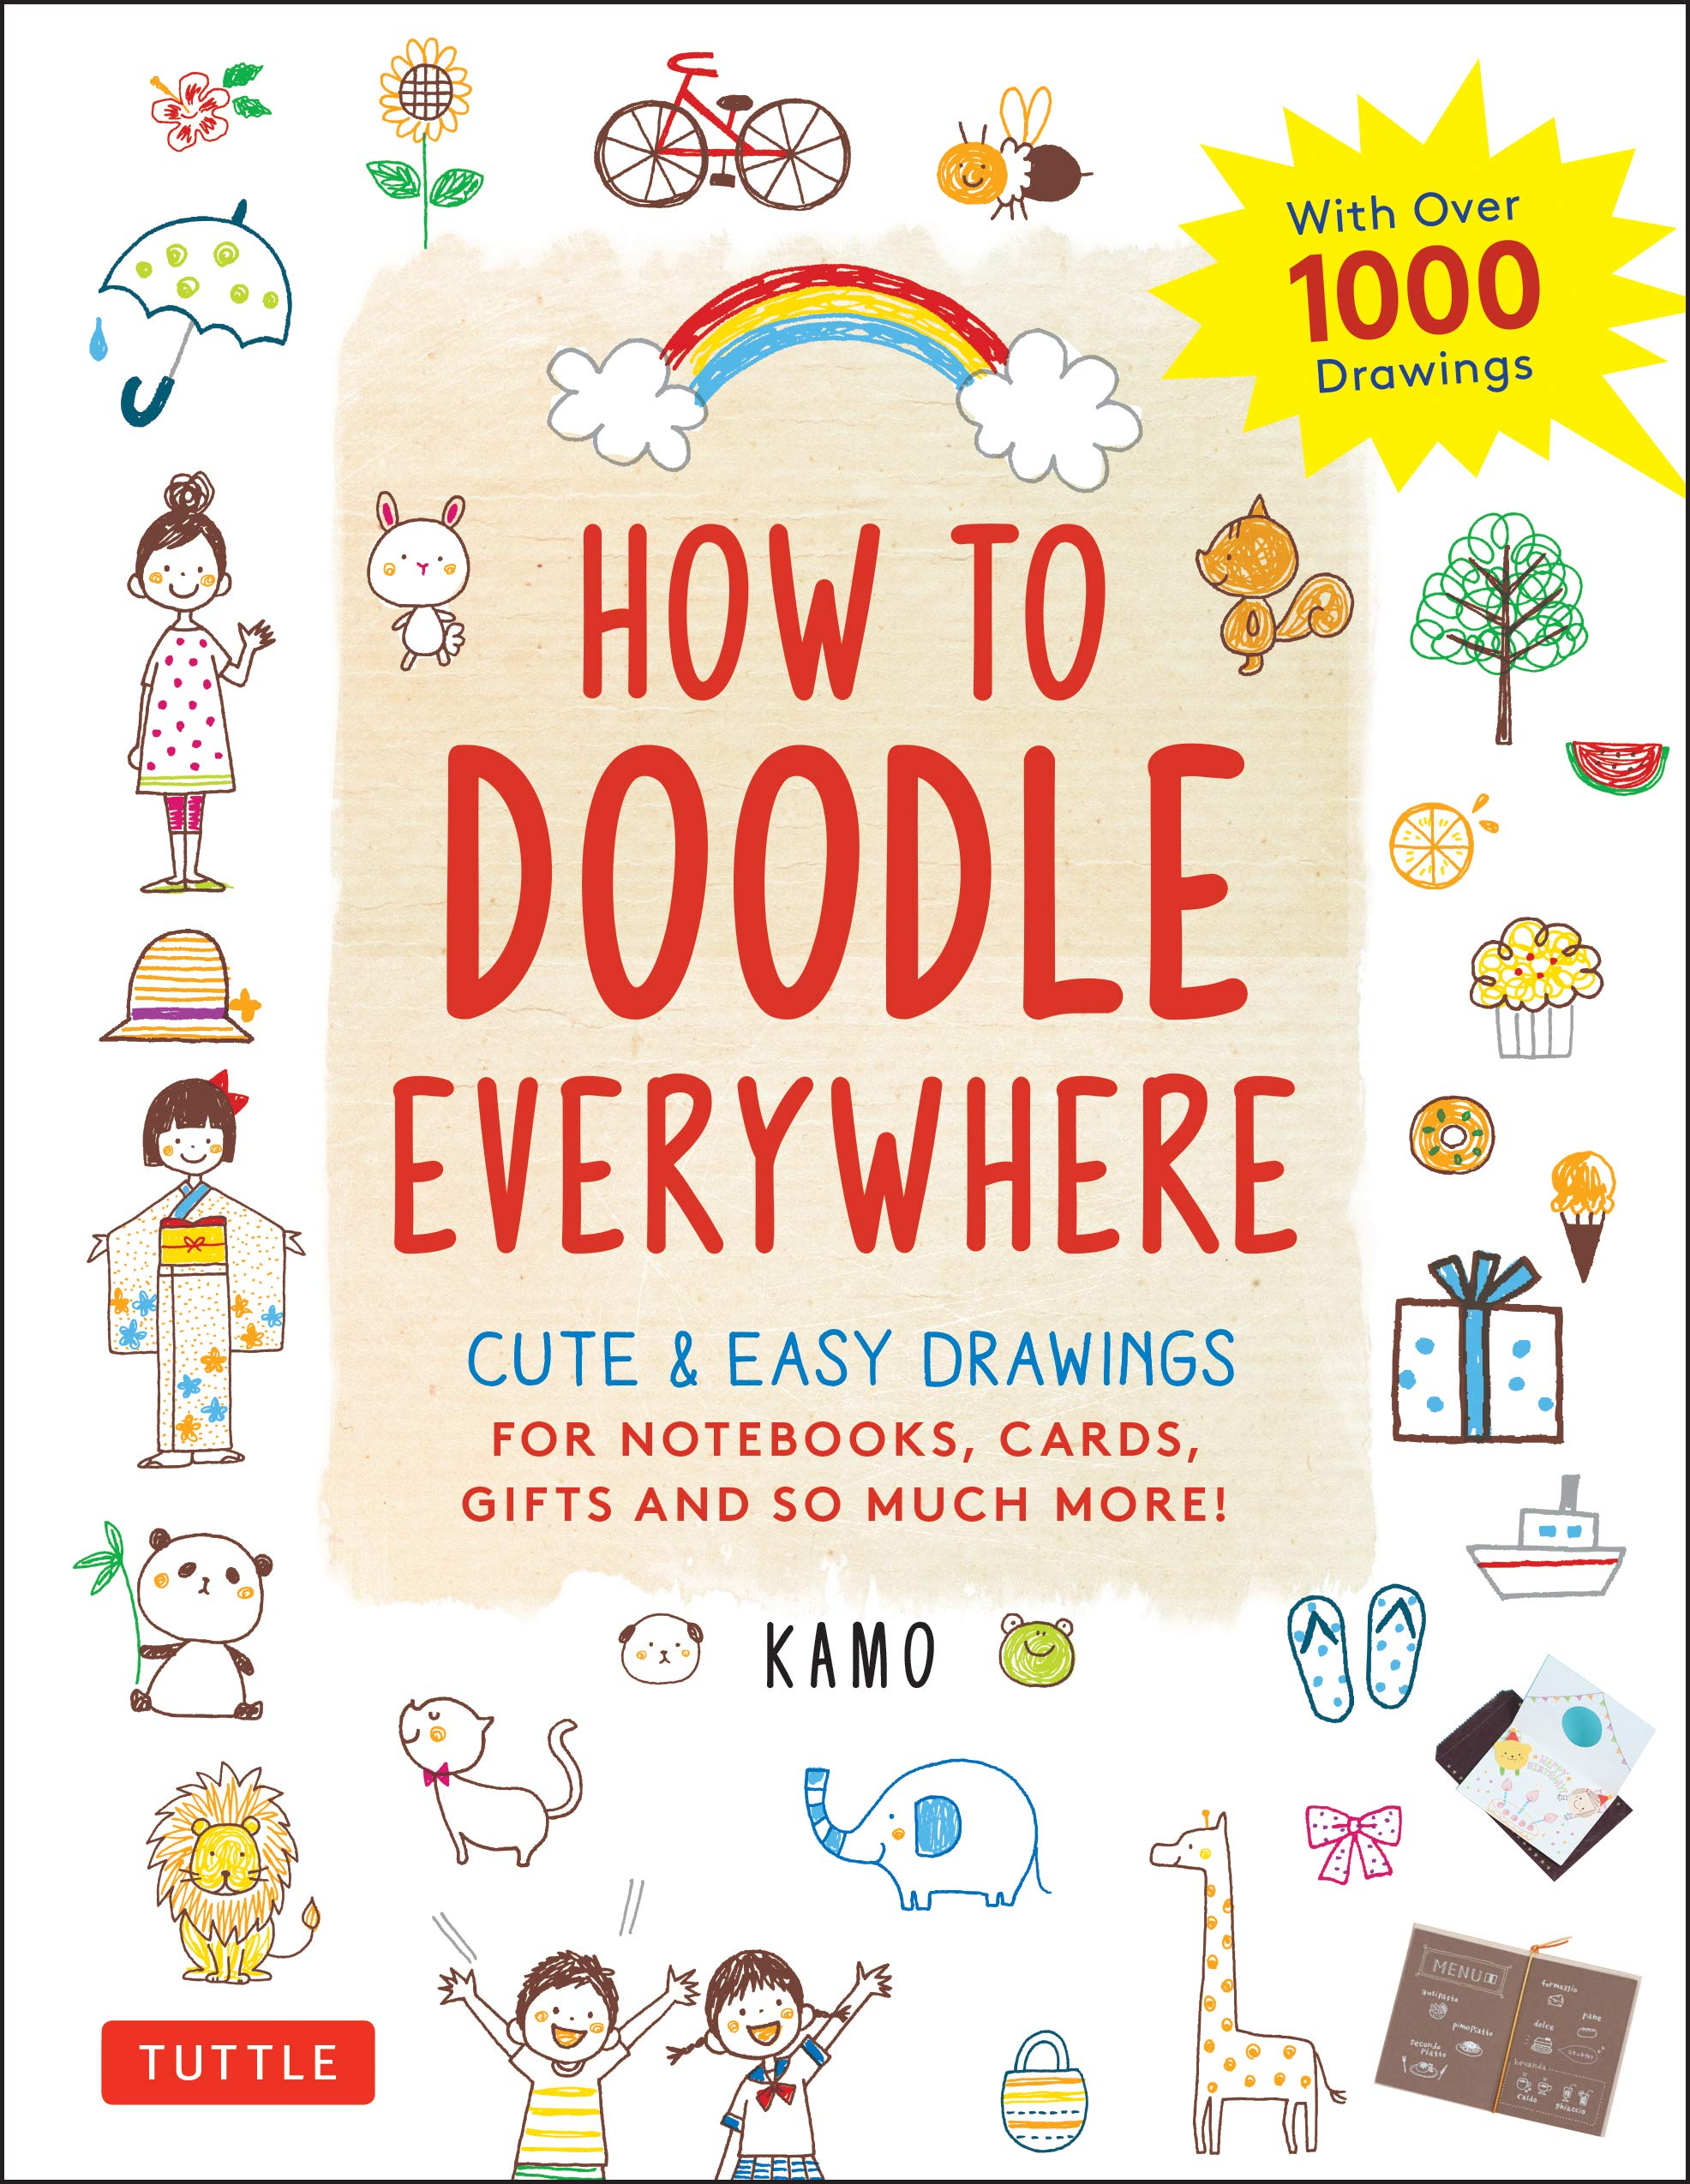 How To Doodle Everywhere Cute Easy Drawings For Notebooks Cards Gifts And So Much More Kamo 9784805315859 Amazon Com Books